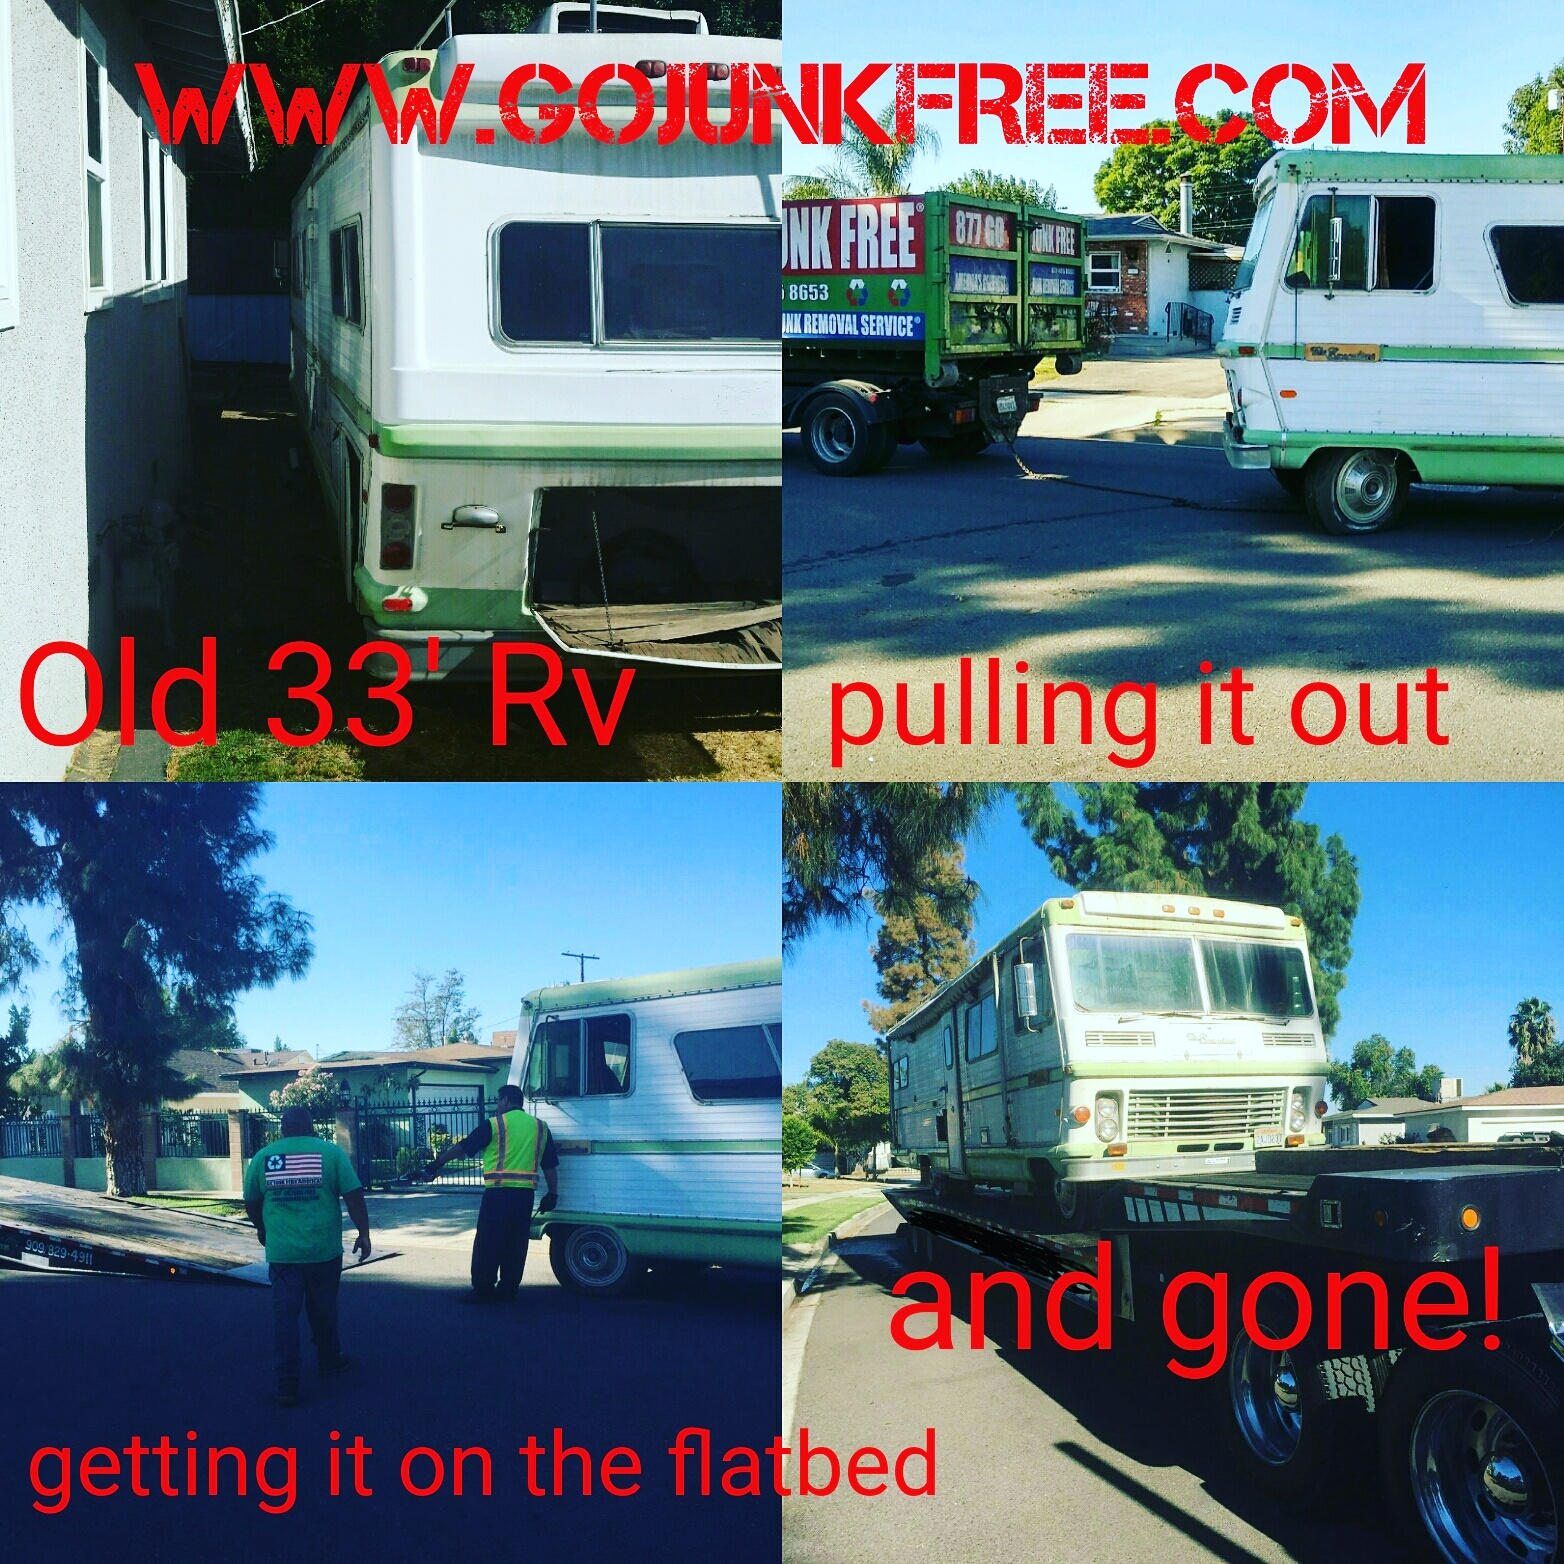 Los Angeles RV and Motorhome Removal | Go Junk Free America